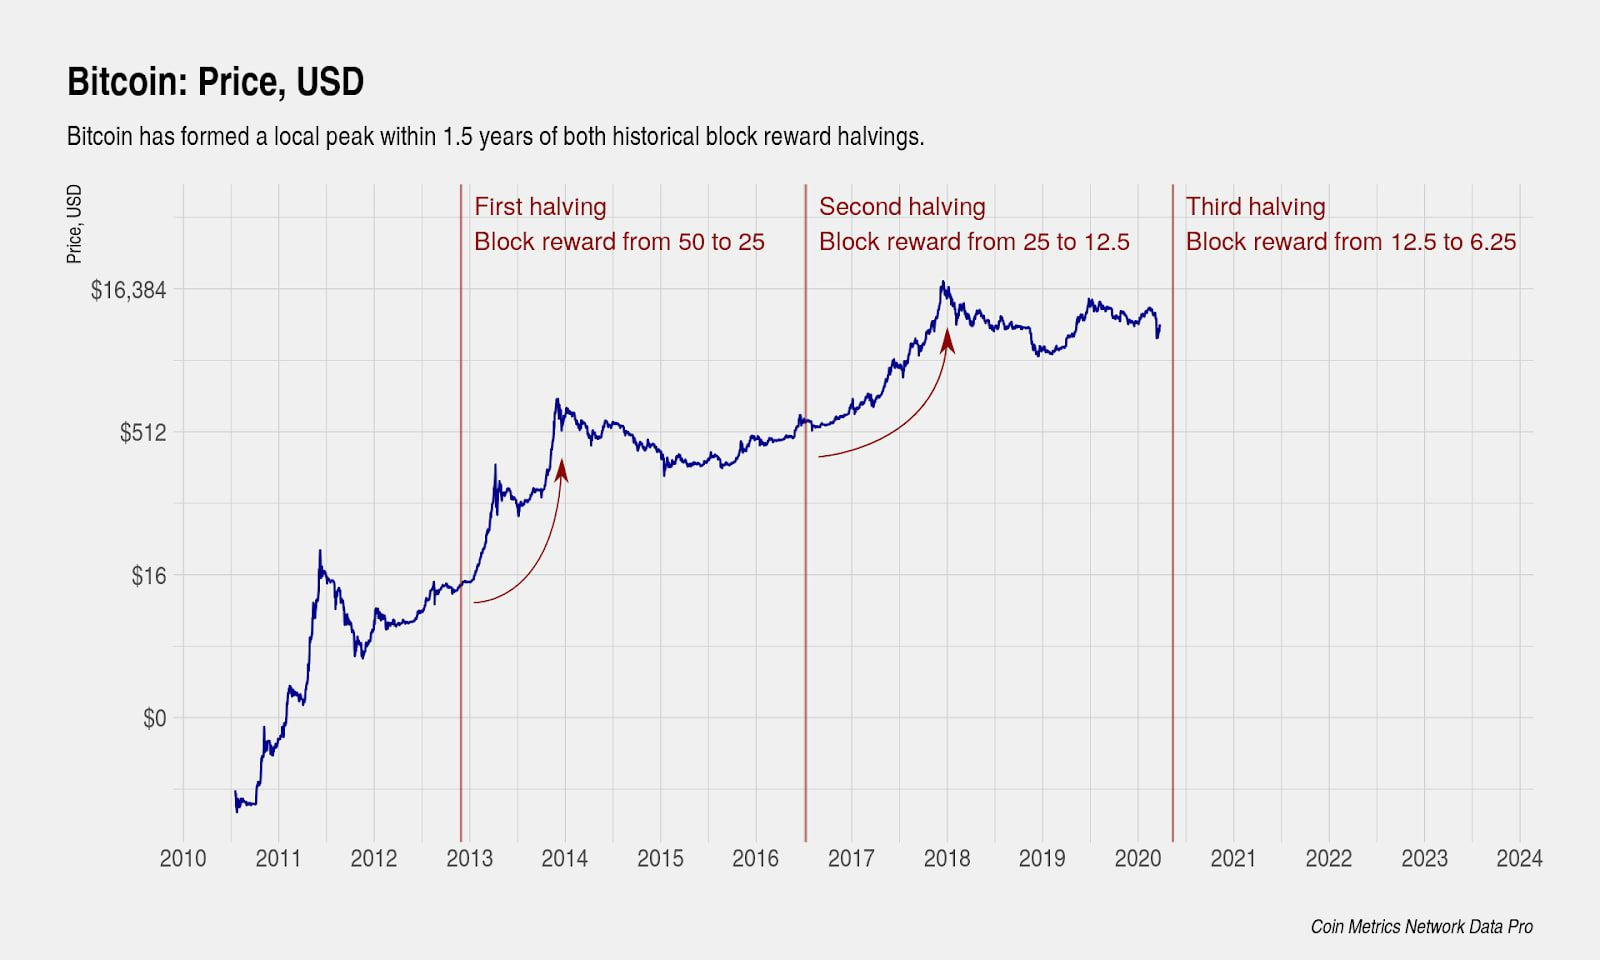 Quantitative Hardening: Dissecting the Third Bitcoin Halving, 3 Key Data Points to Watch